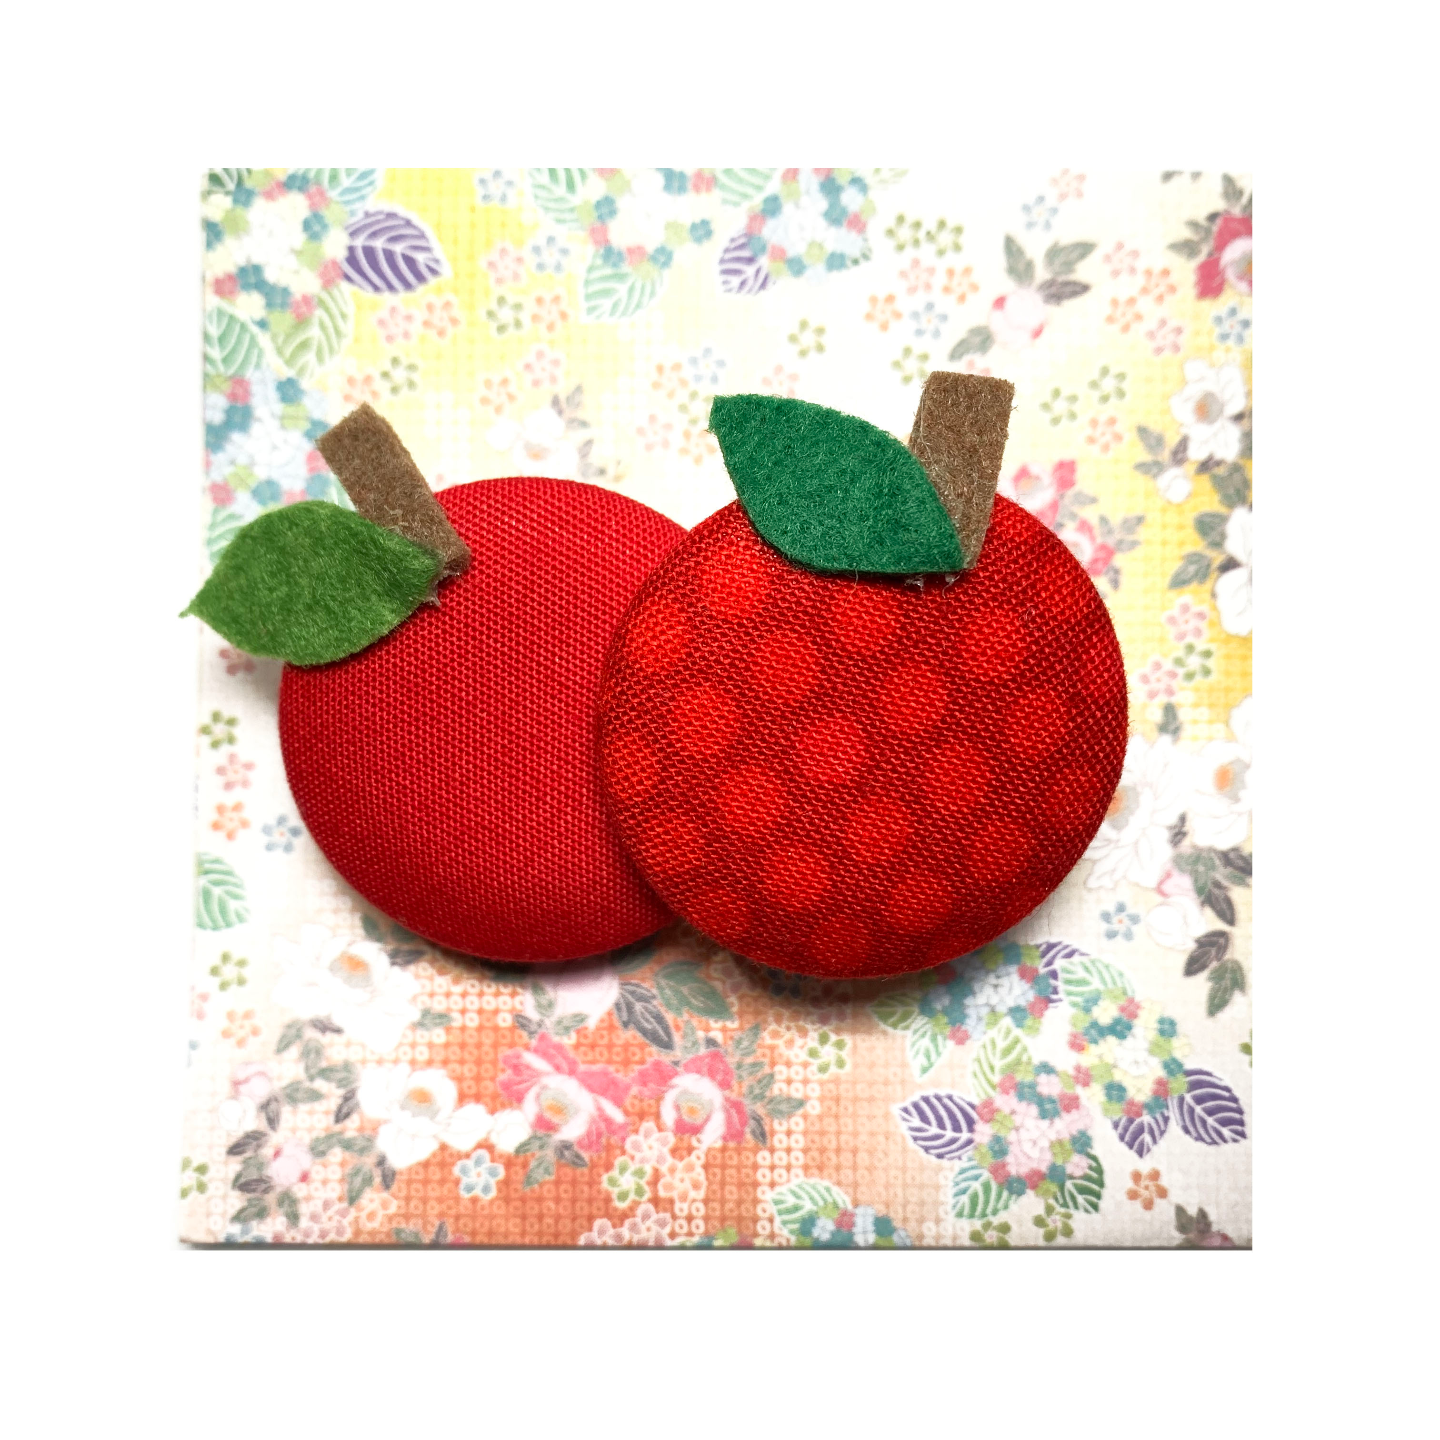 Handmade Brooch: Apple Brooch by Doe & Audrey